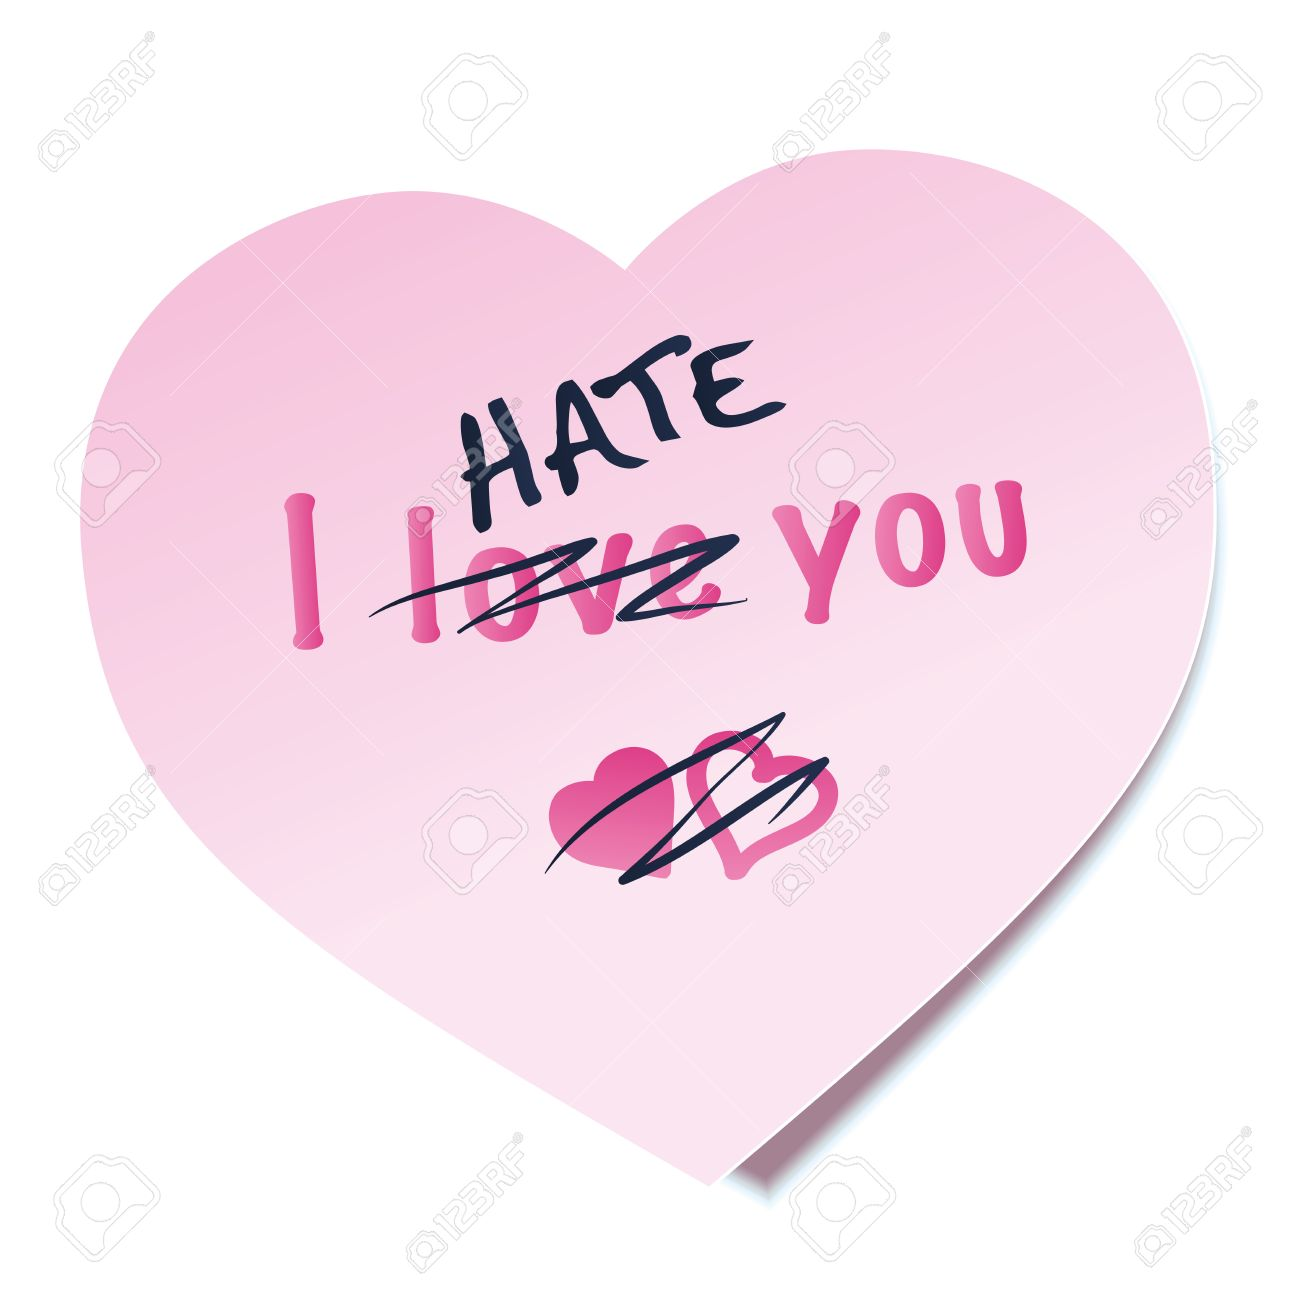 I Hate You Written On A Heart Shaped Pink Sticky Note The Word